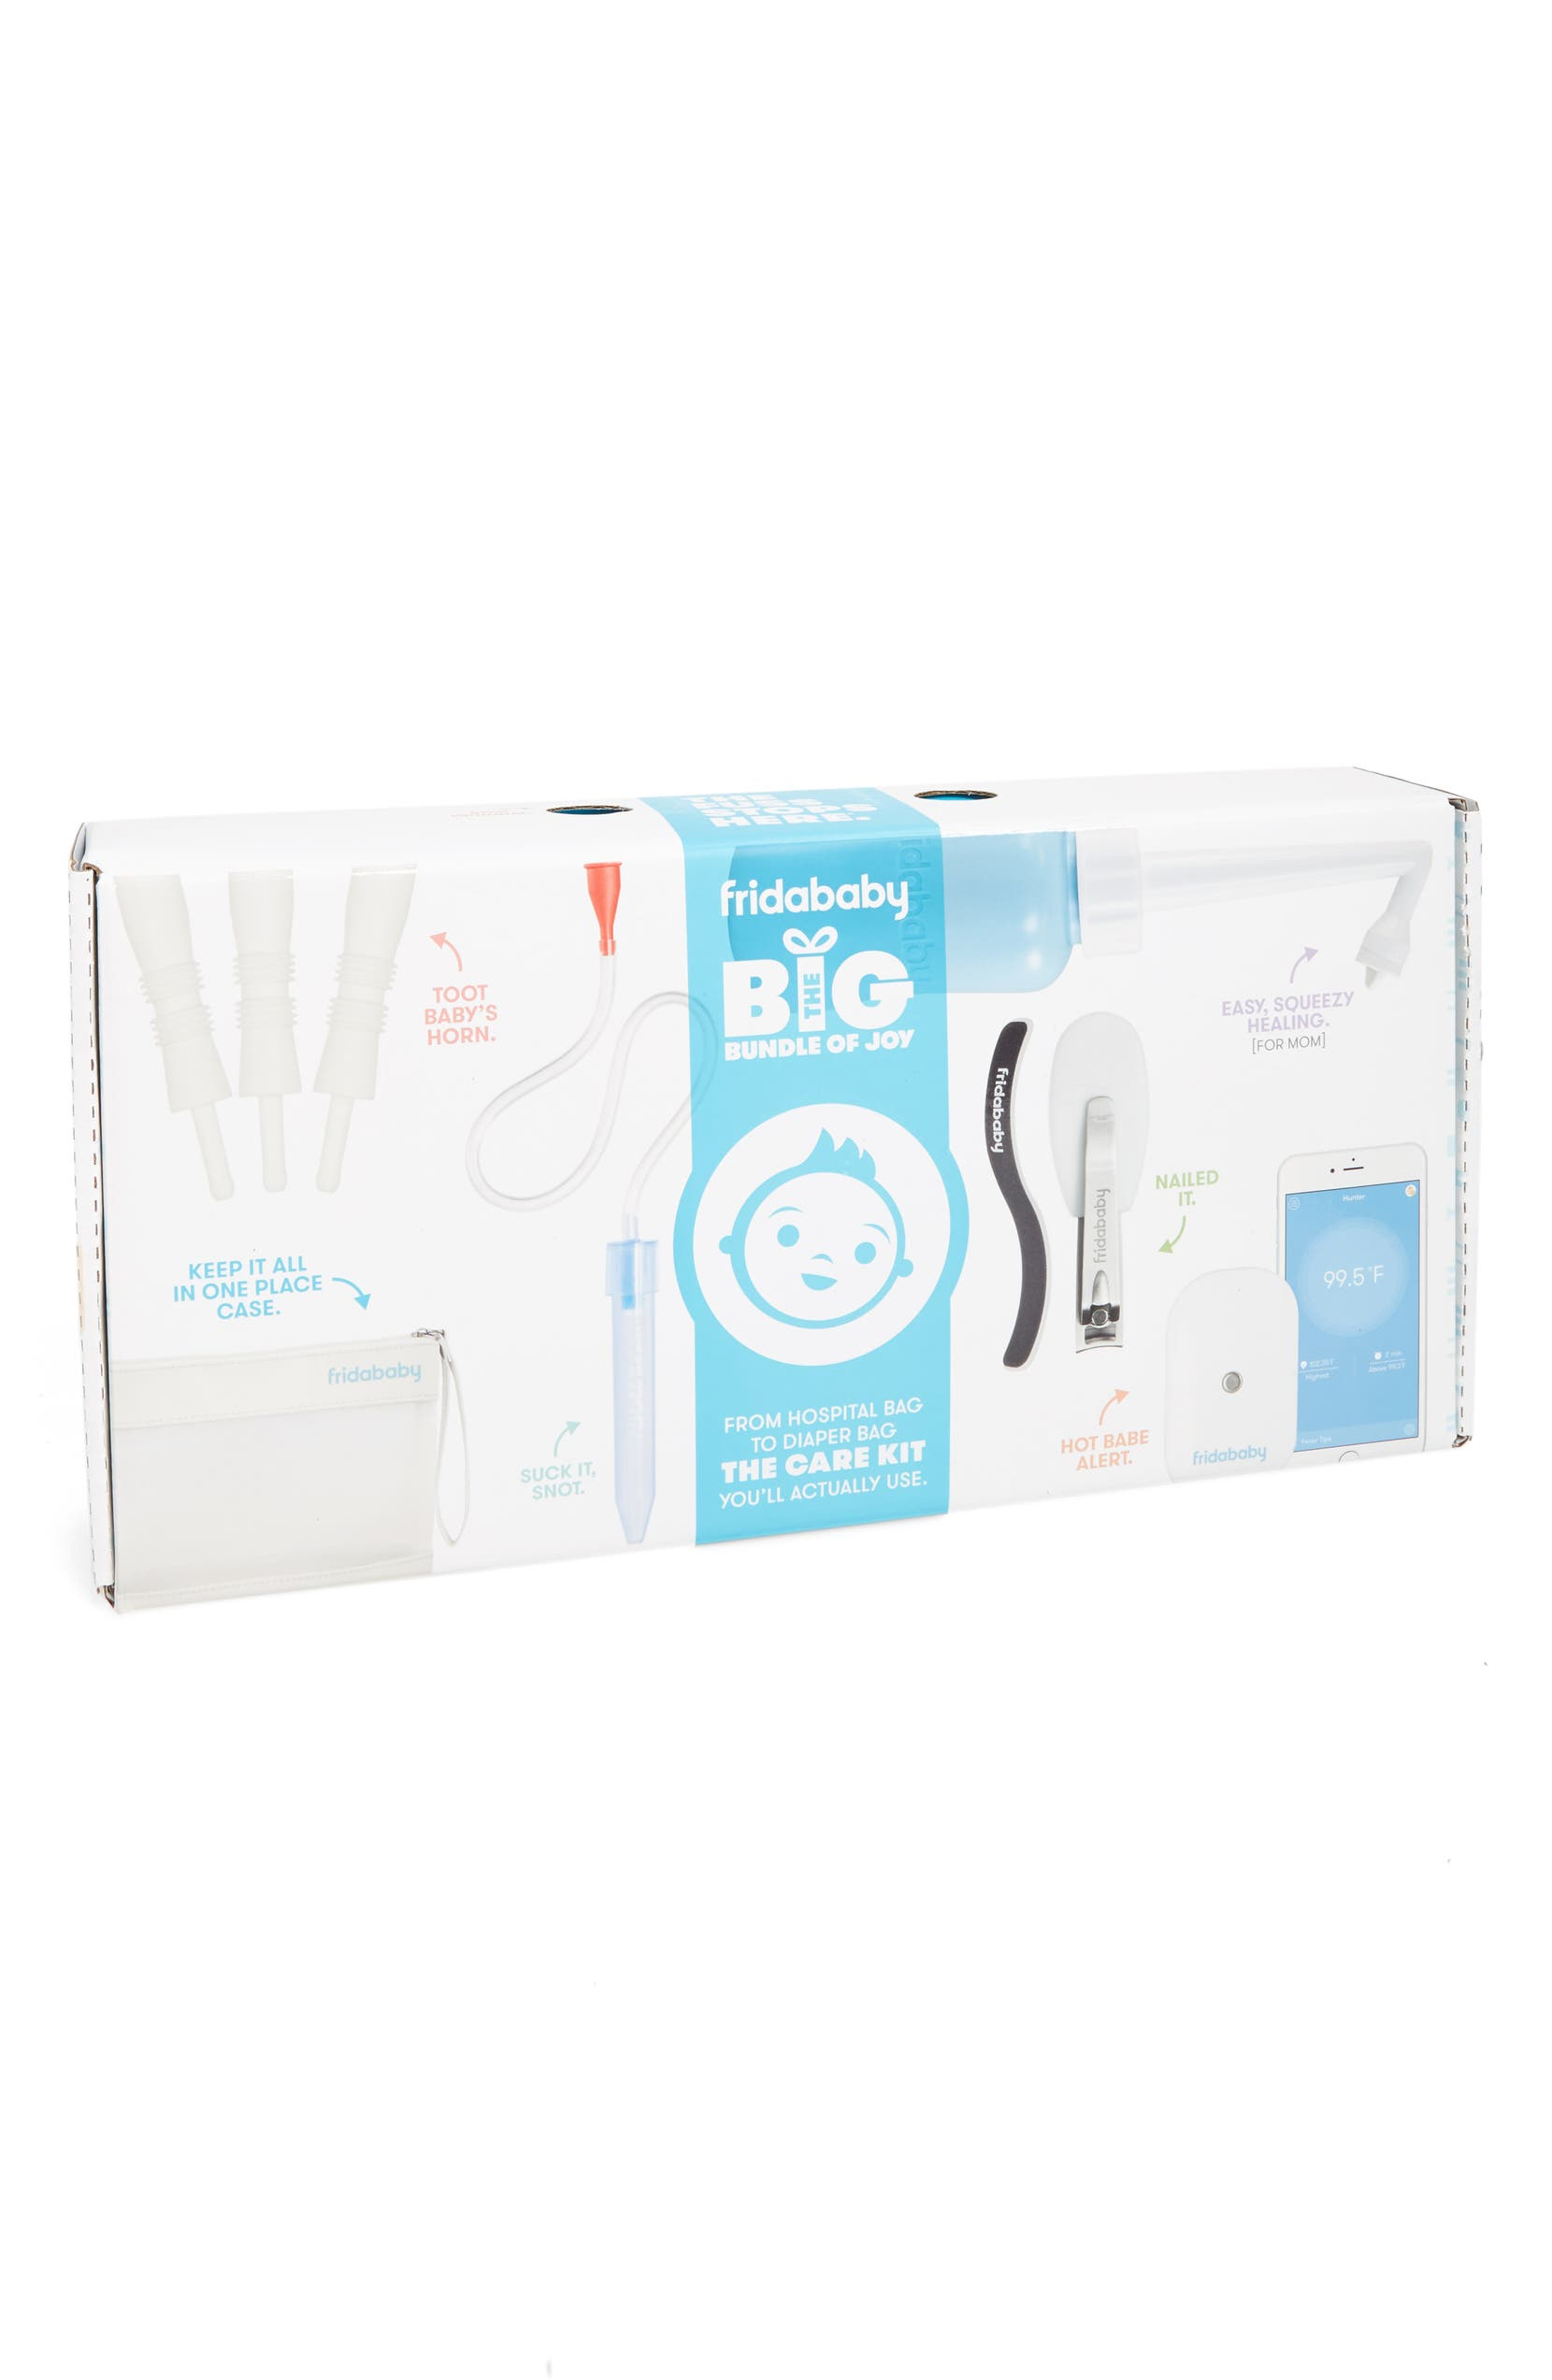 Fridababy The Big Bundle Of Joy Newborn Care Kit Nordstrom Merries Baby Diapers New Born 24 S